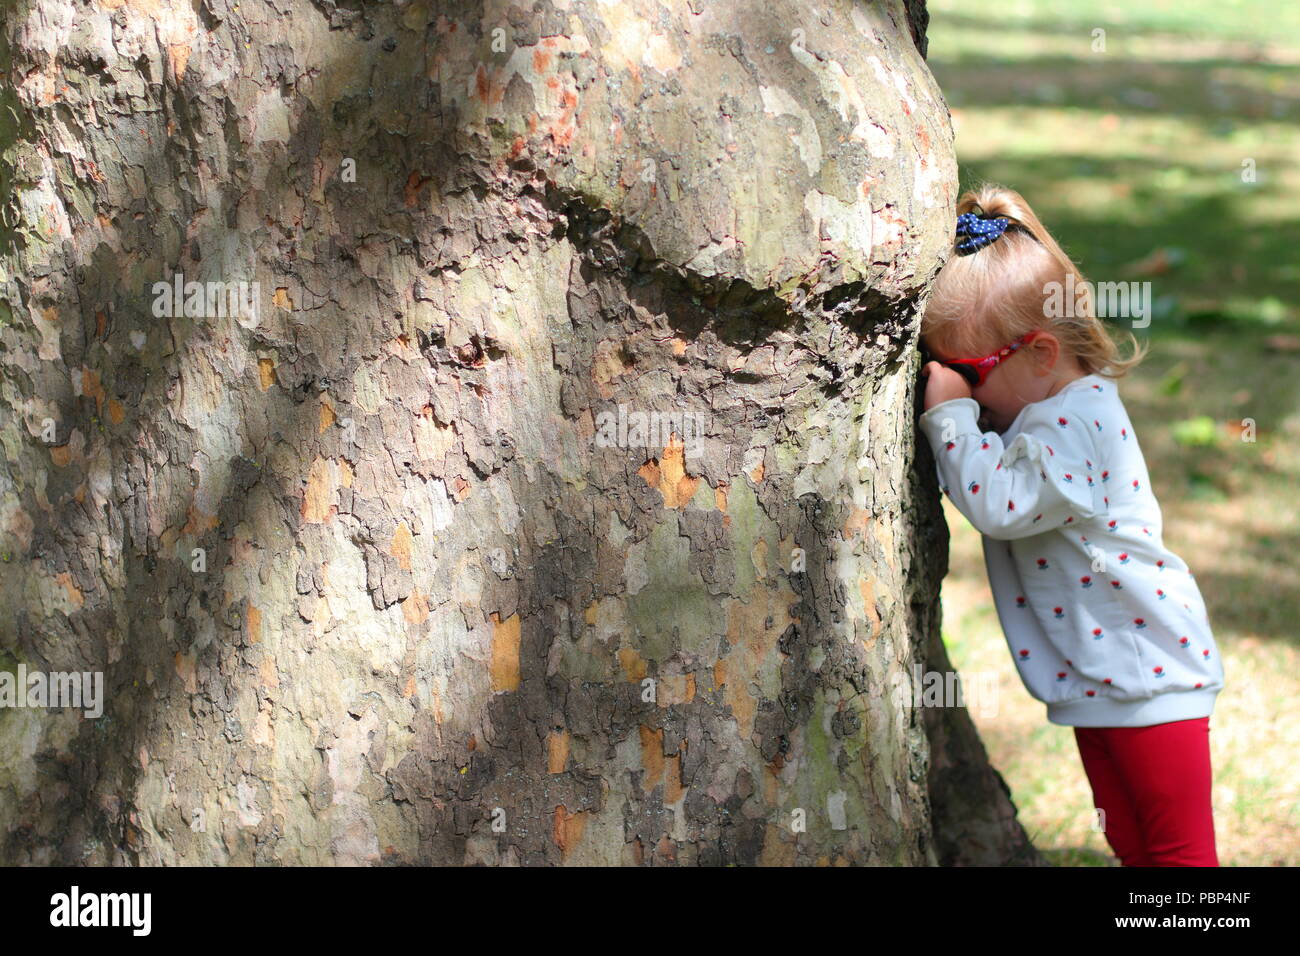 concept of crying, sulking or playing hide and seek by a young girl - Stock Image